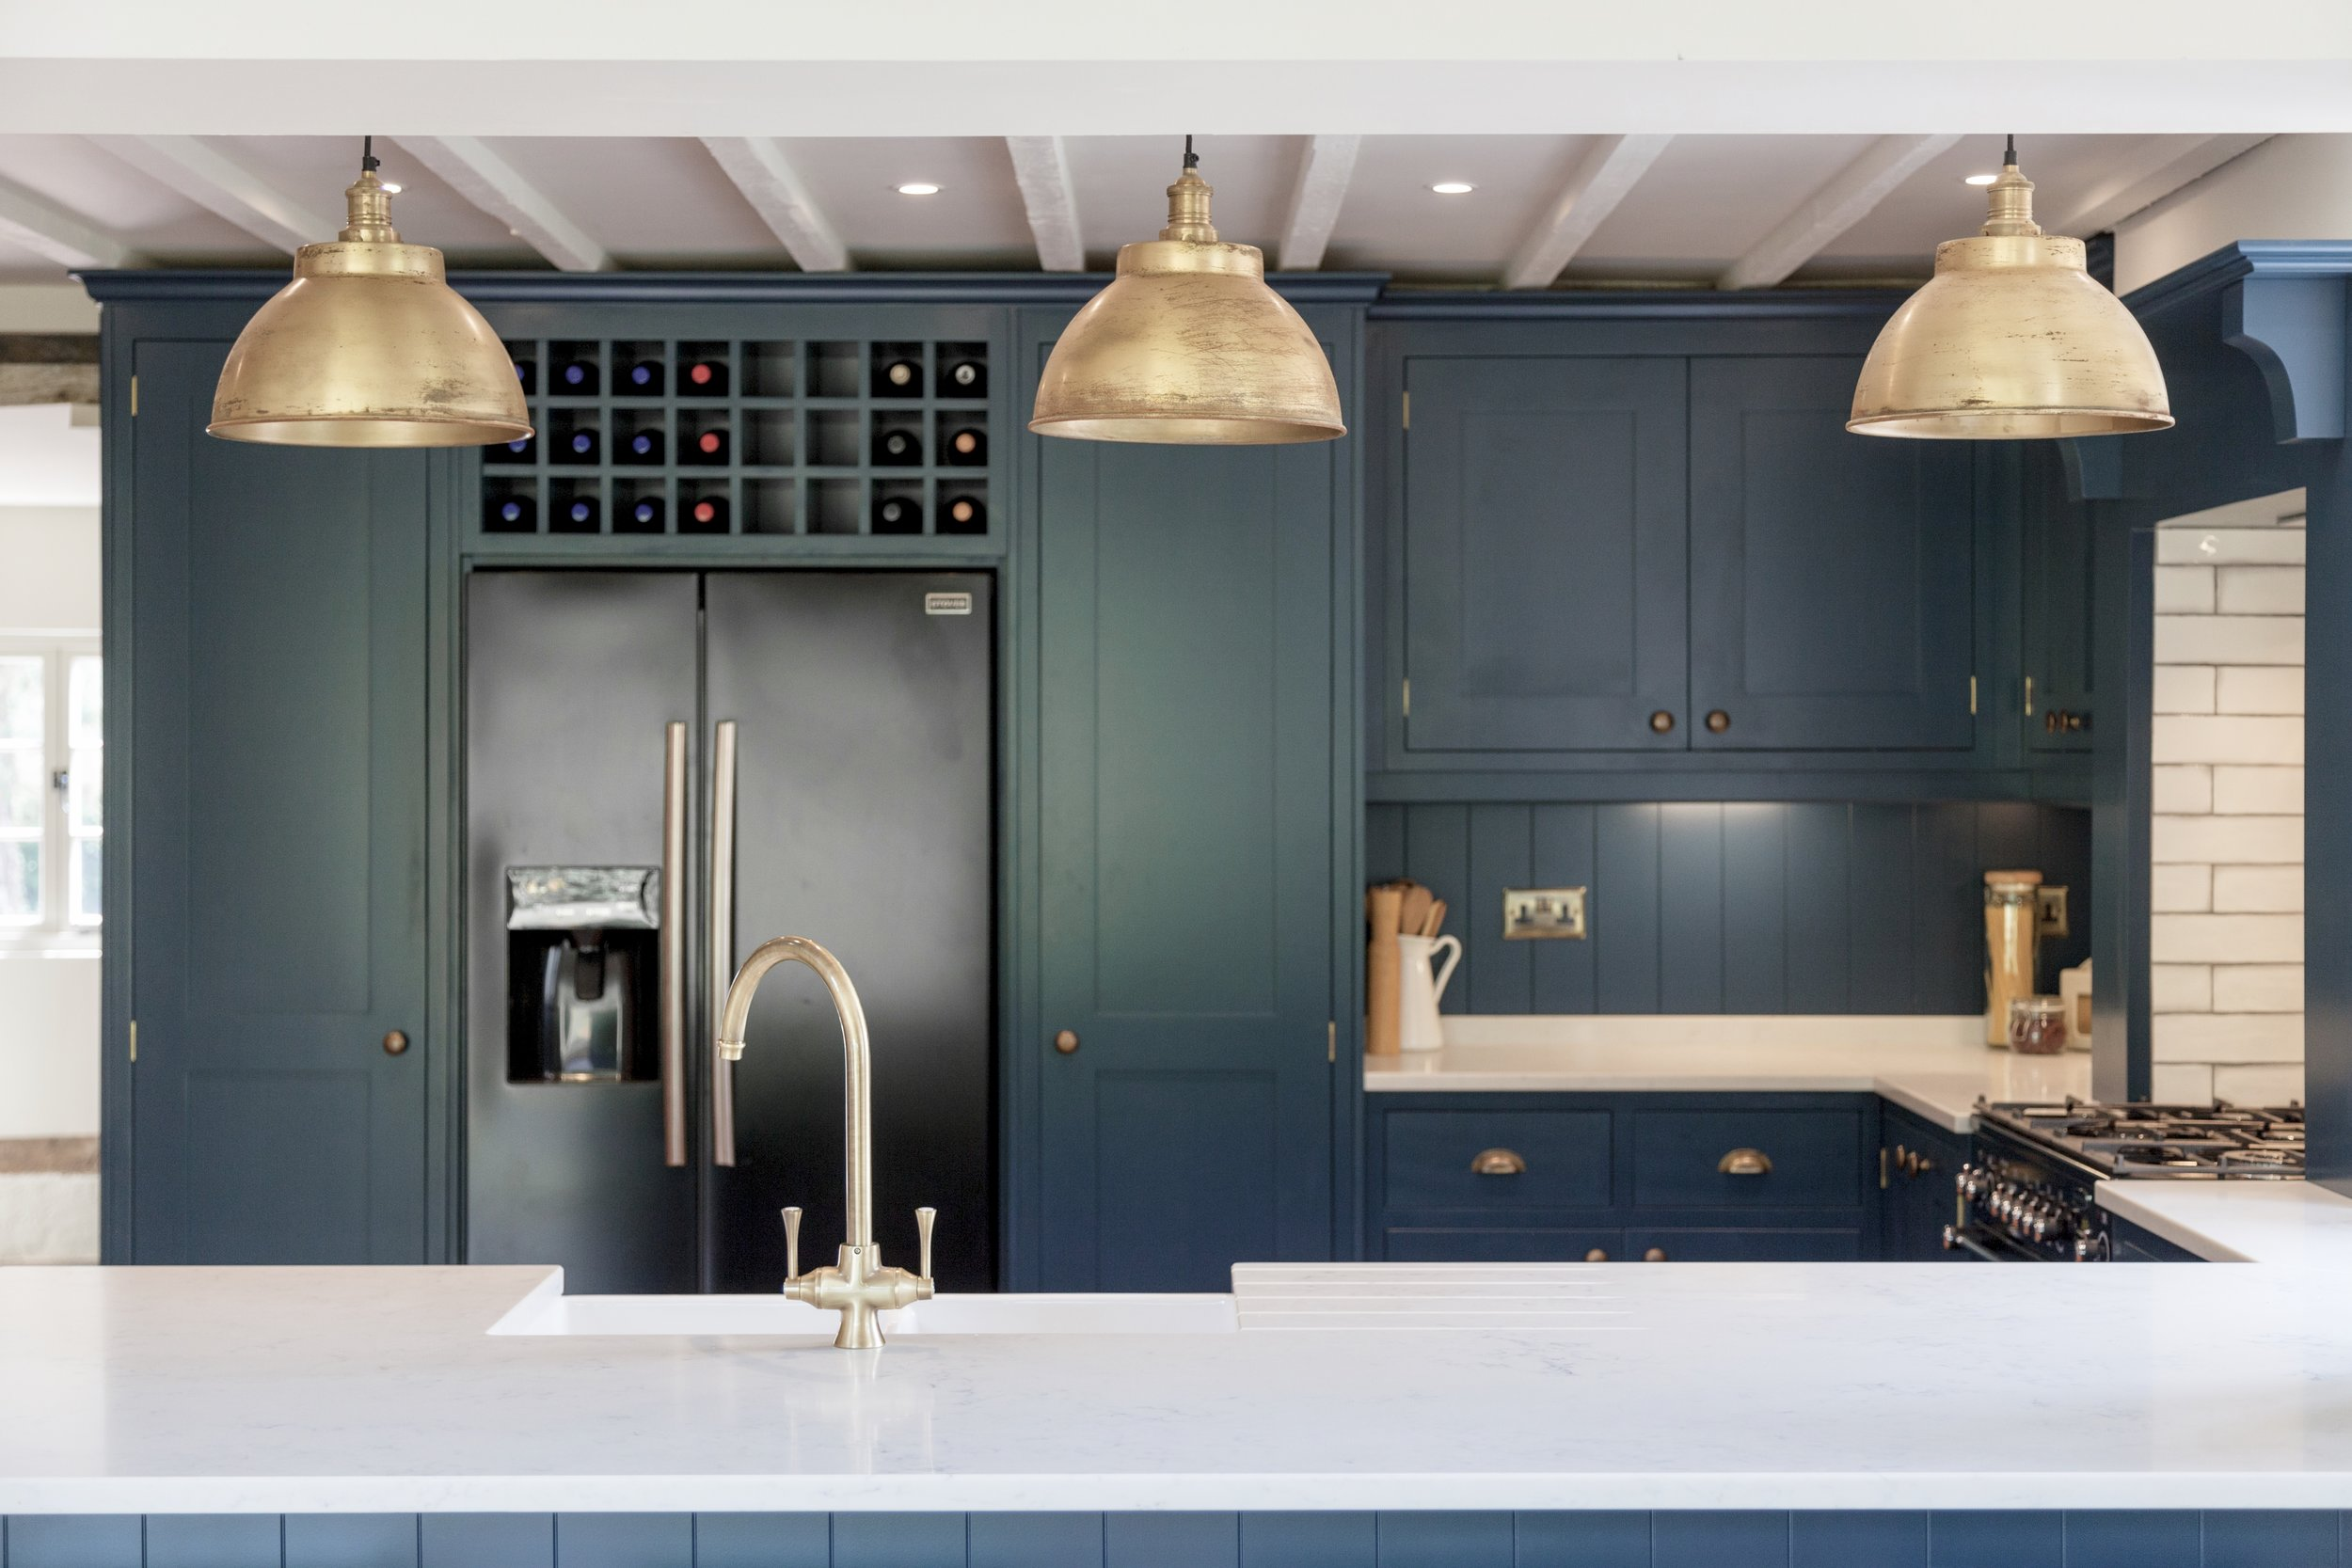 Herefordshire Farmhouse Renovation - See more